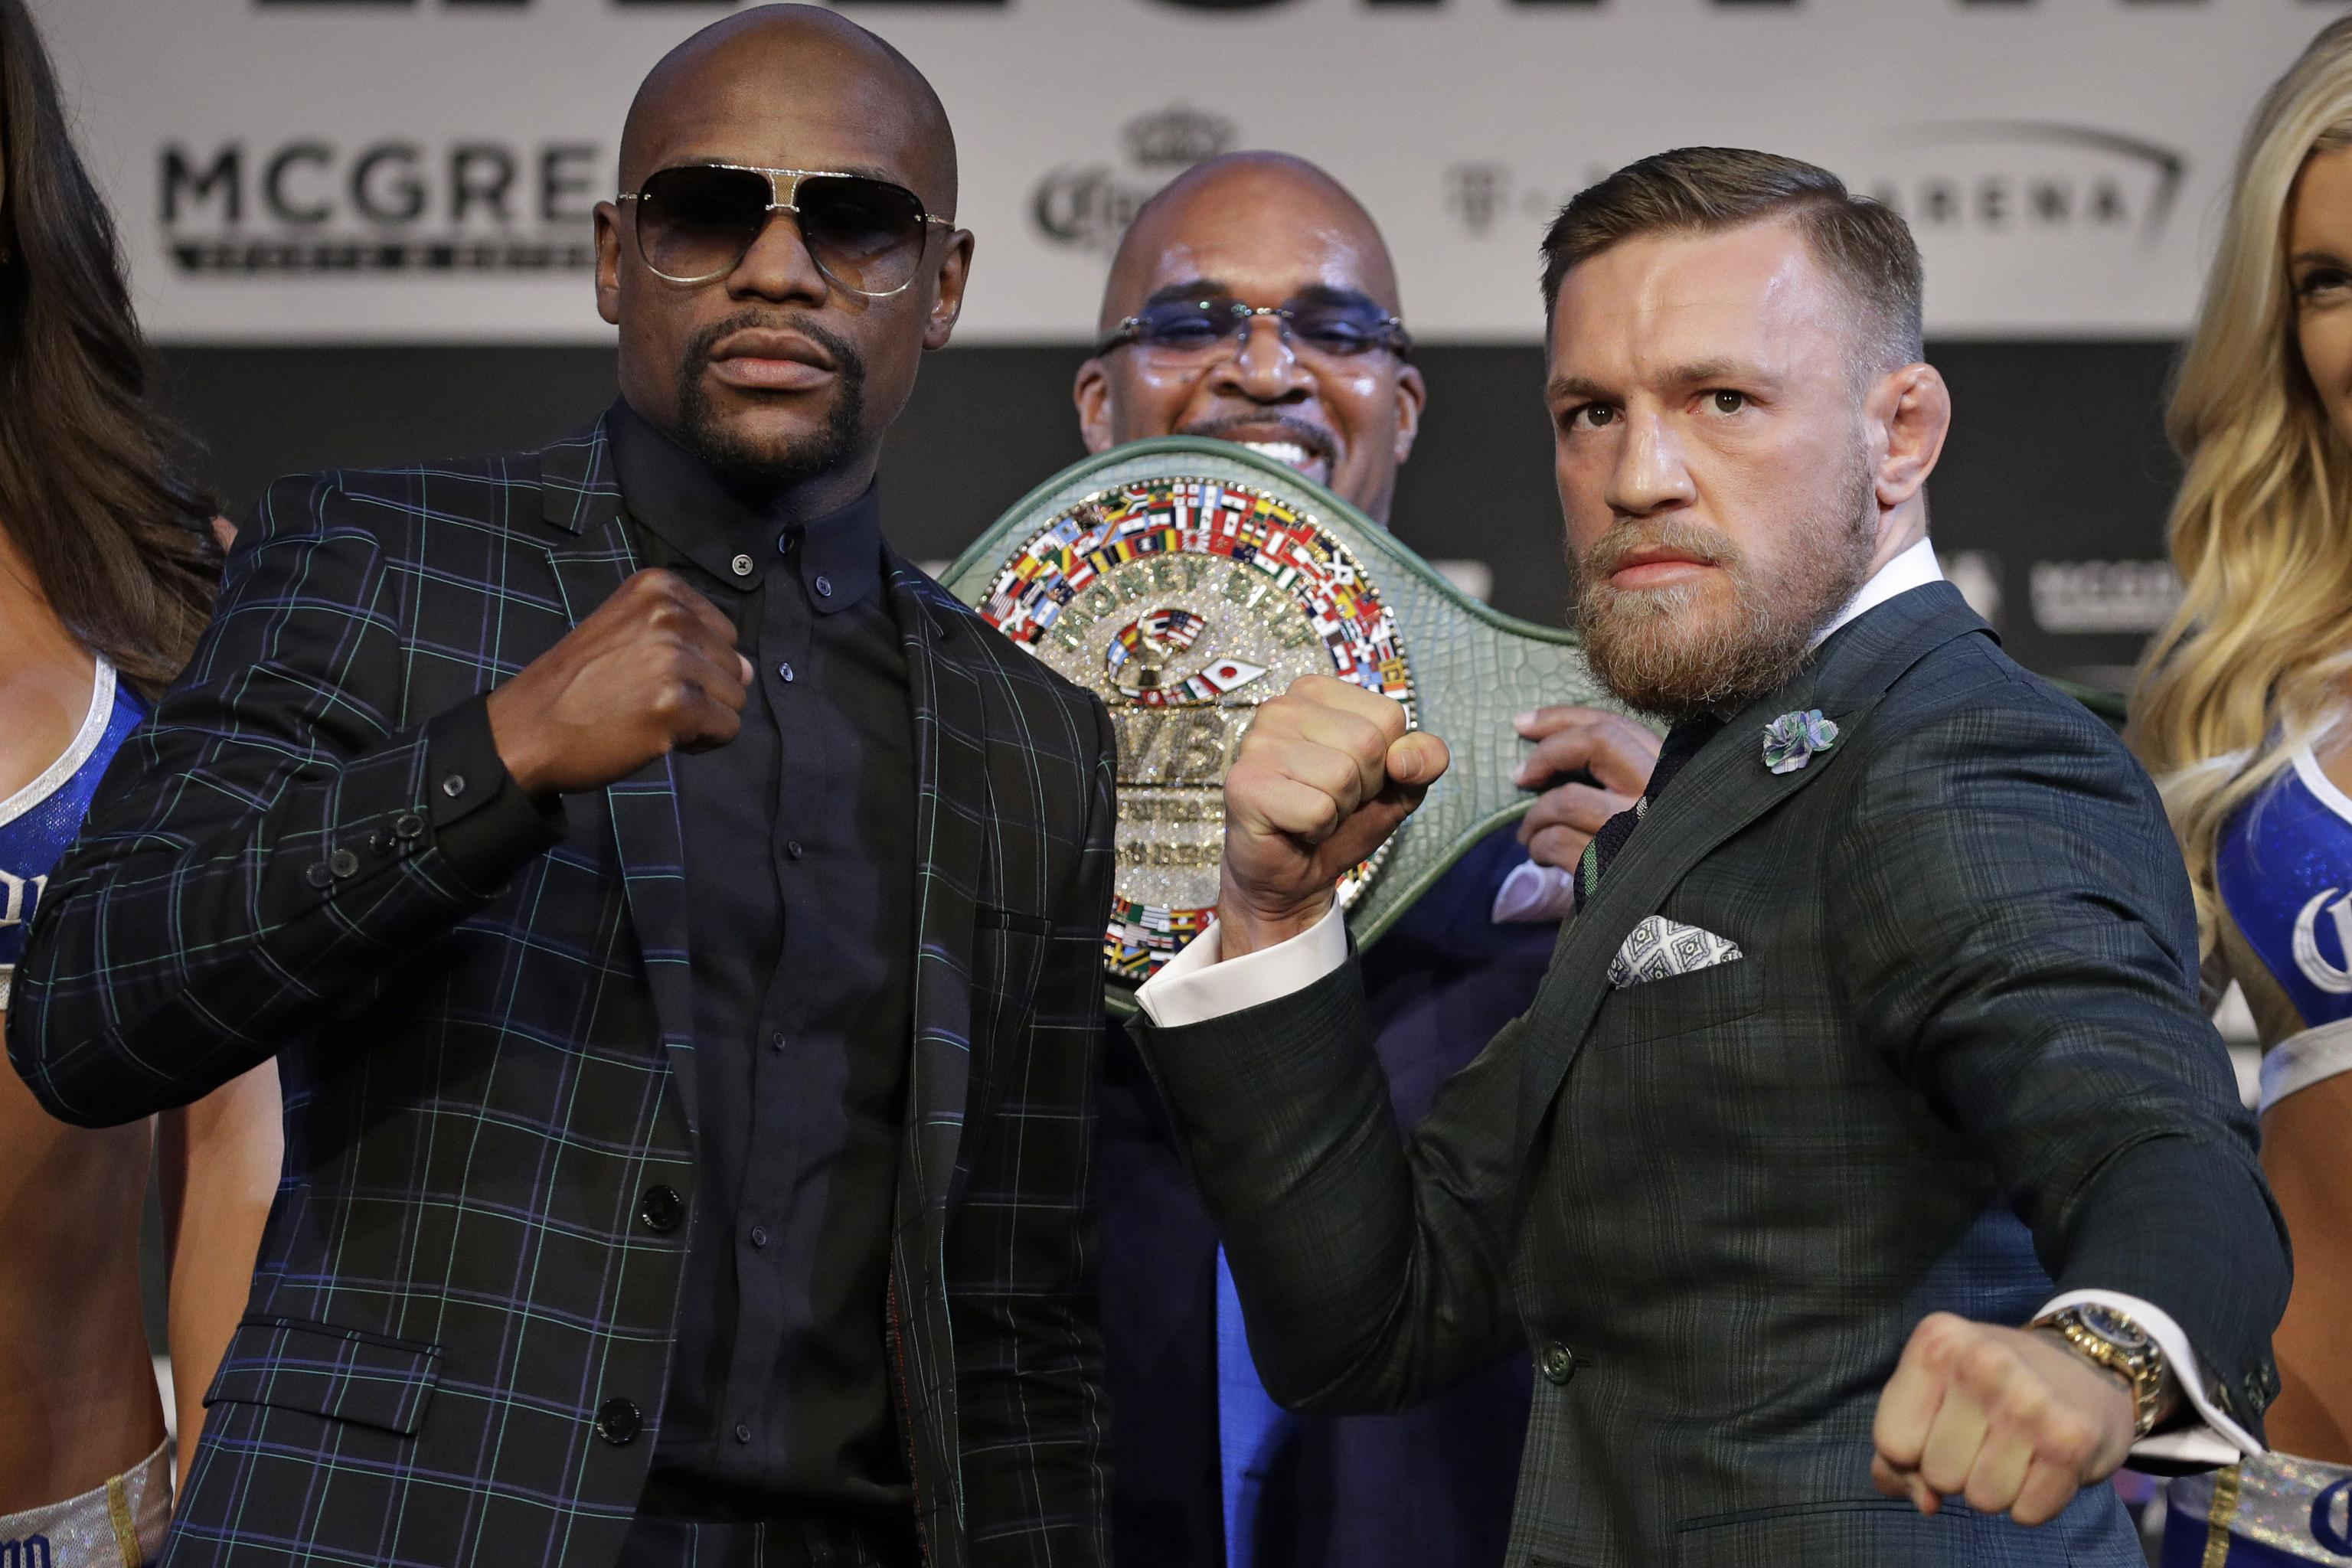 Can i bet on mcgregor mayweather fight at ameristar casino totesport mobile betting setup